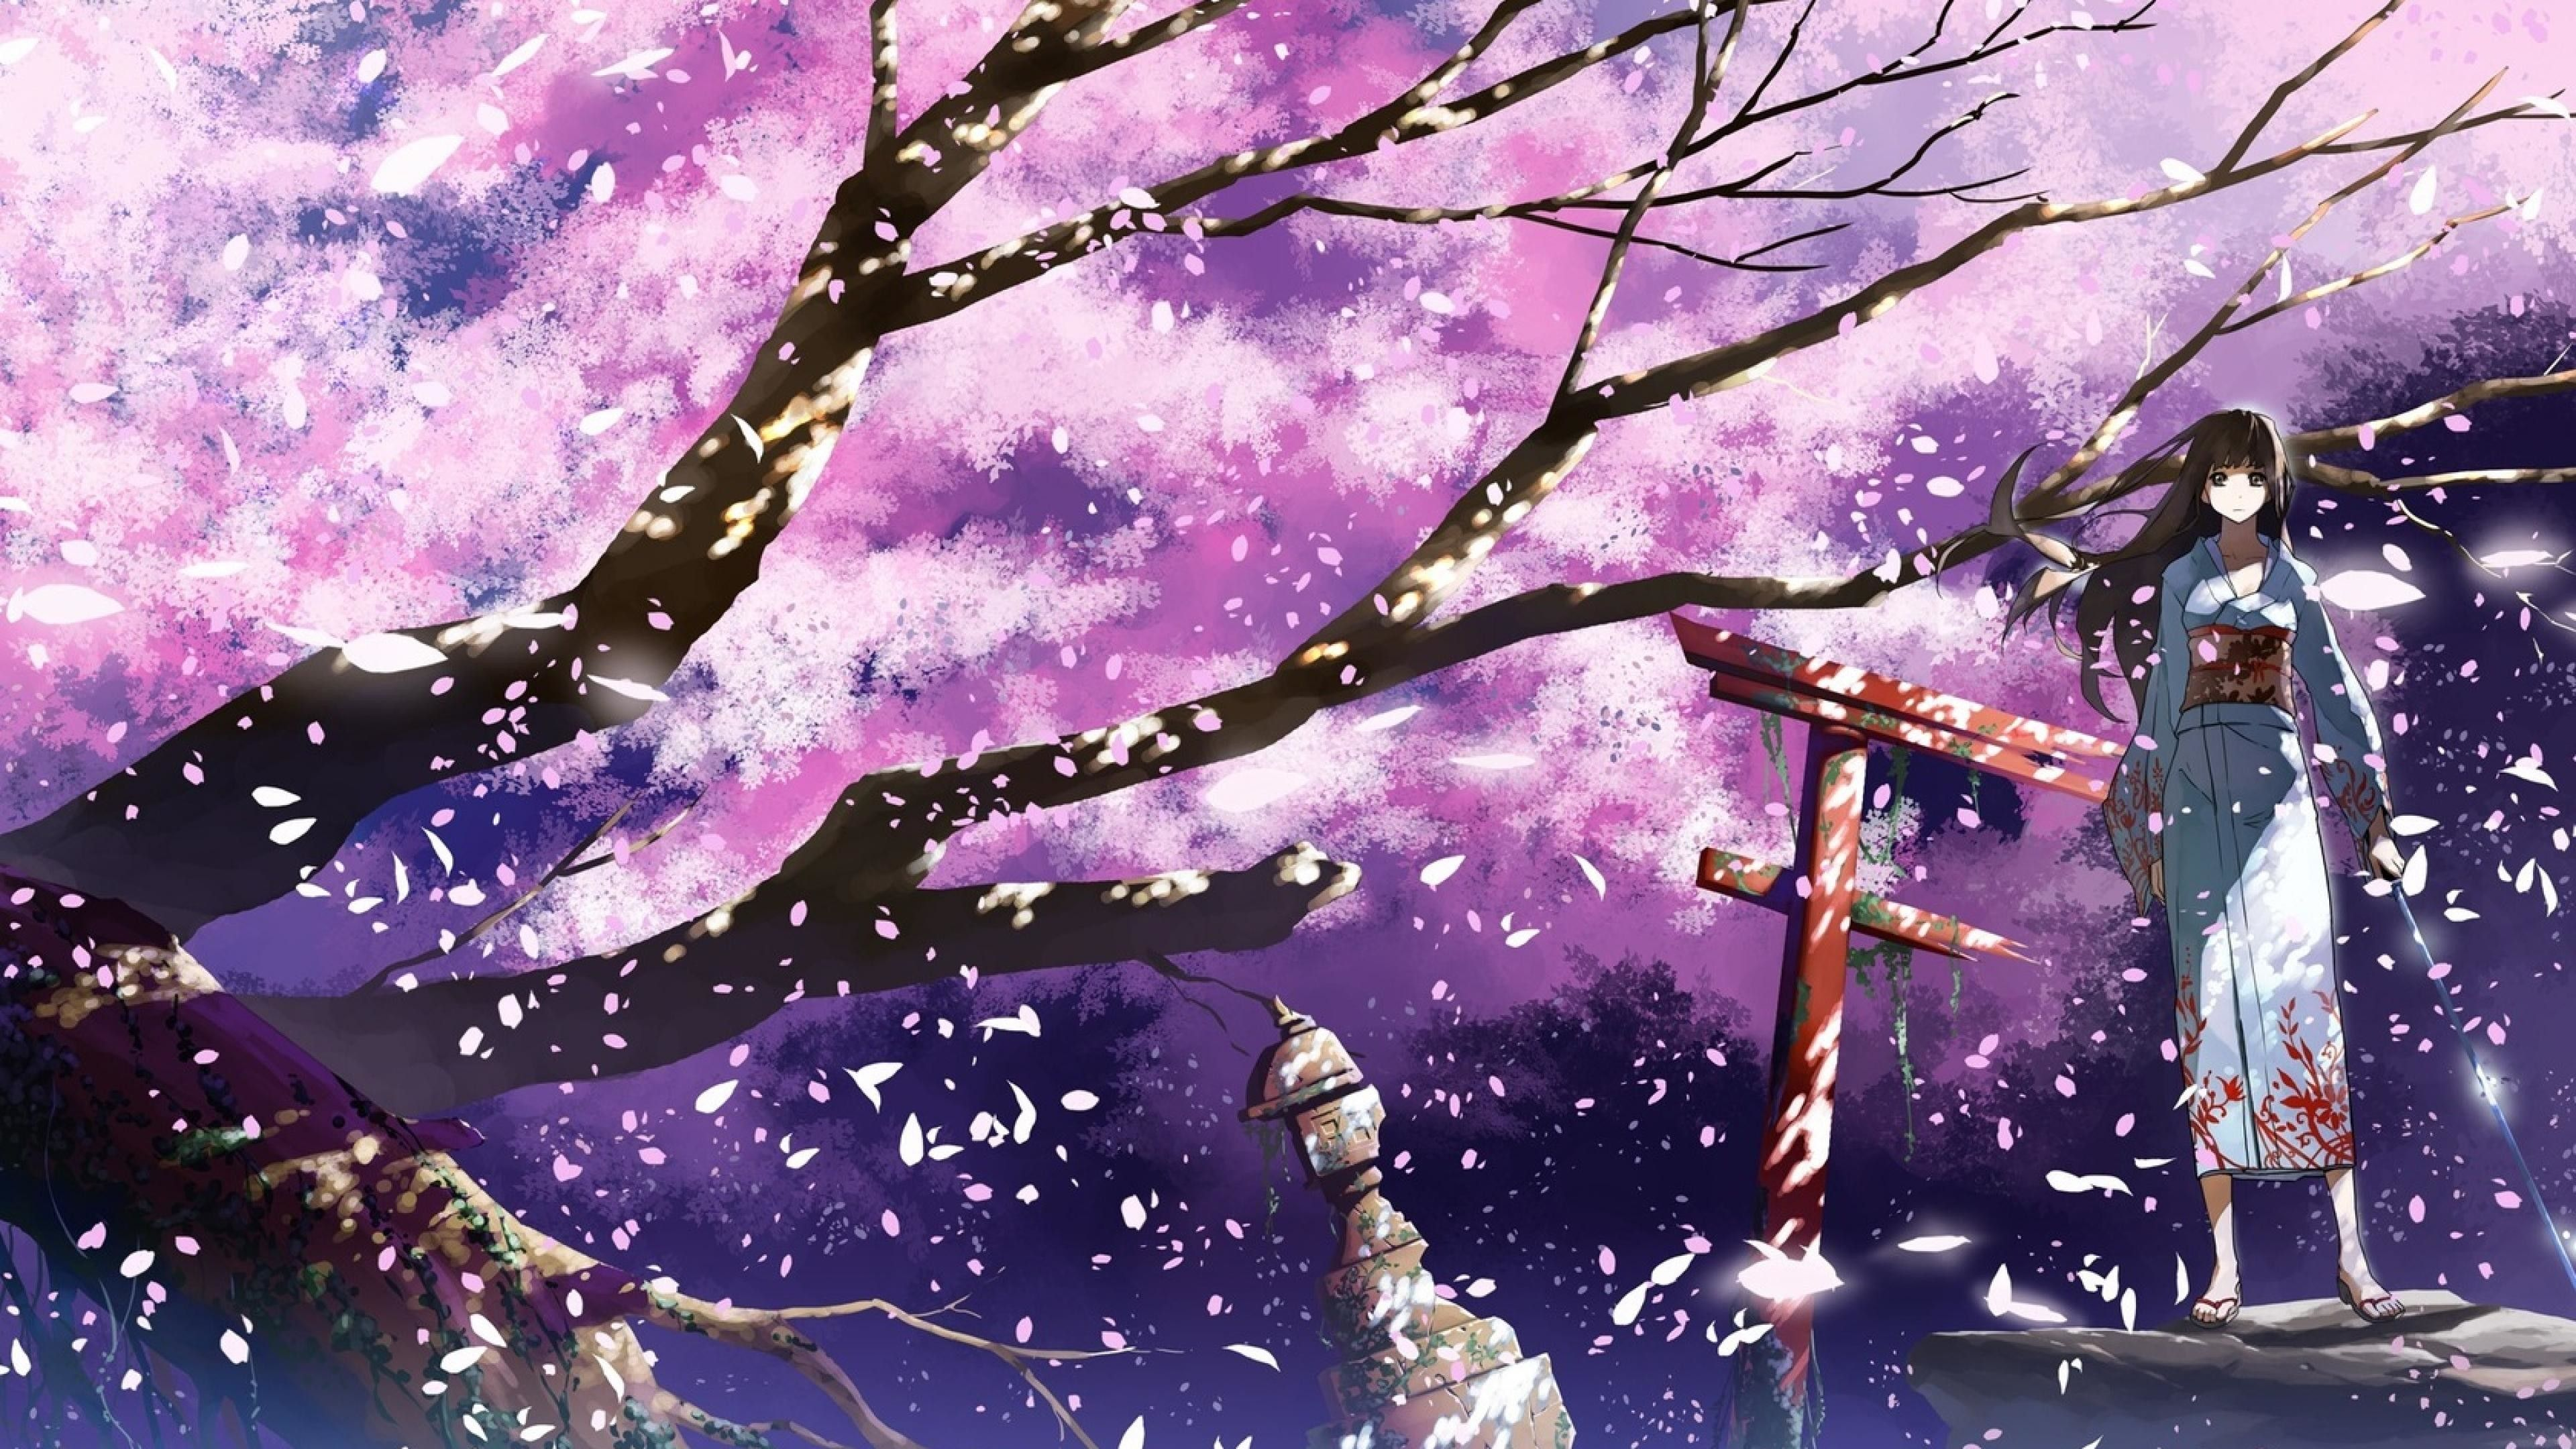 3840x2160 Desktop[4K of the Day 15/20] Cherry Blossoms